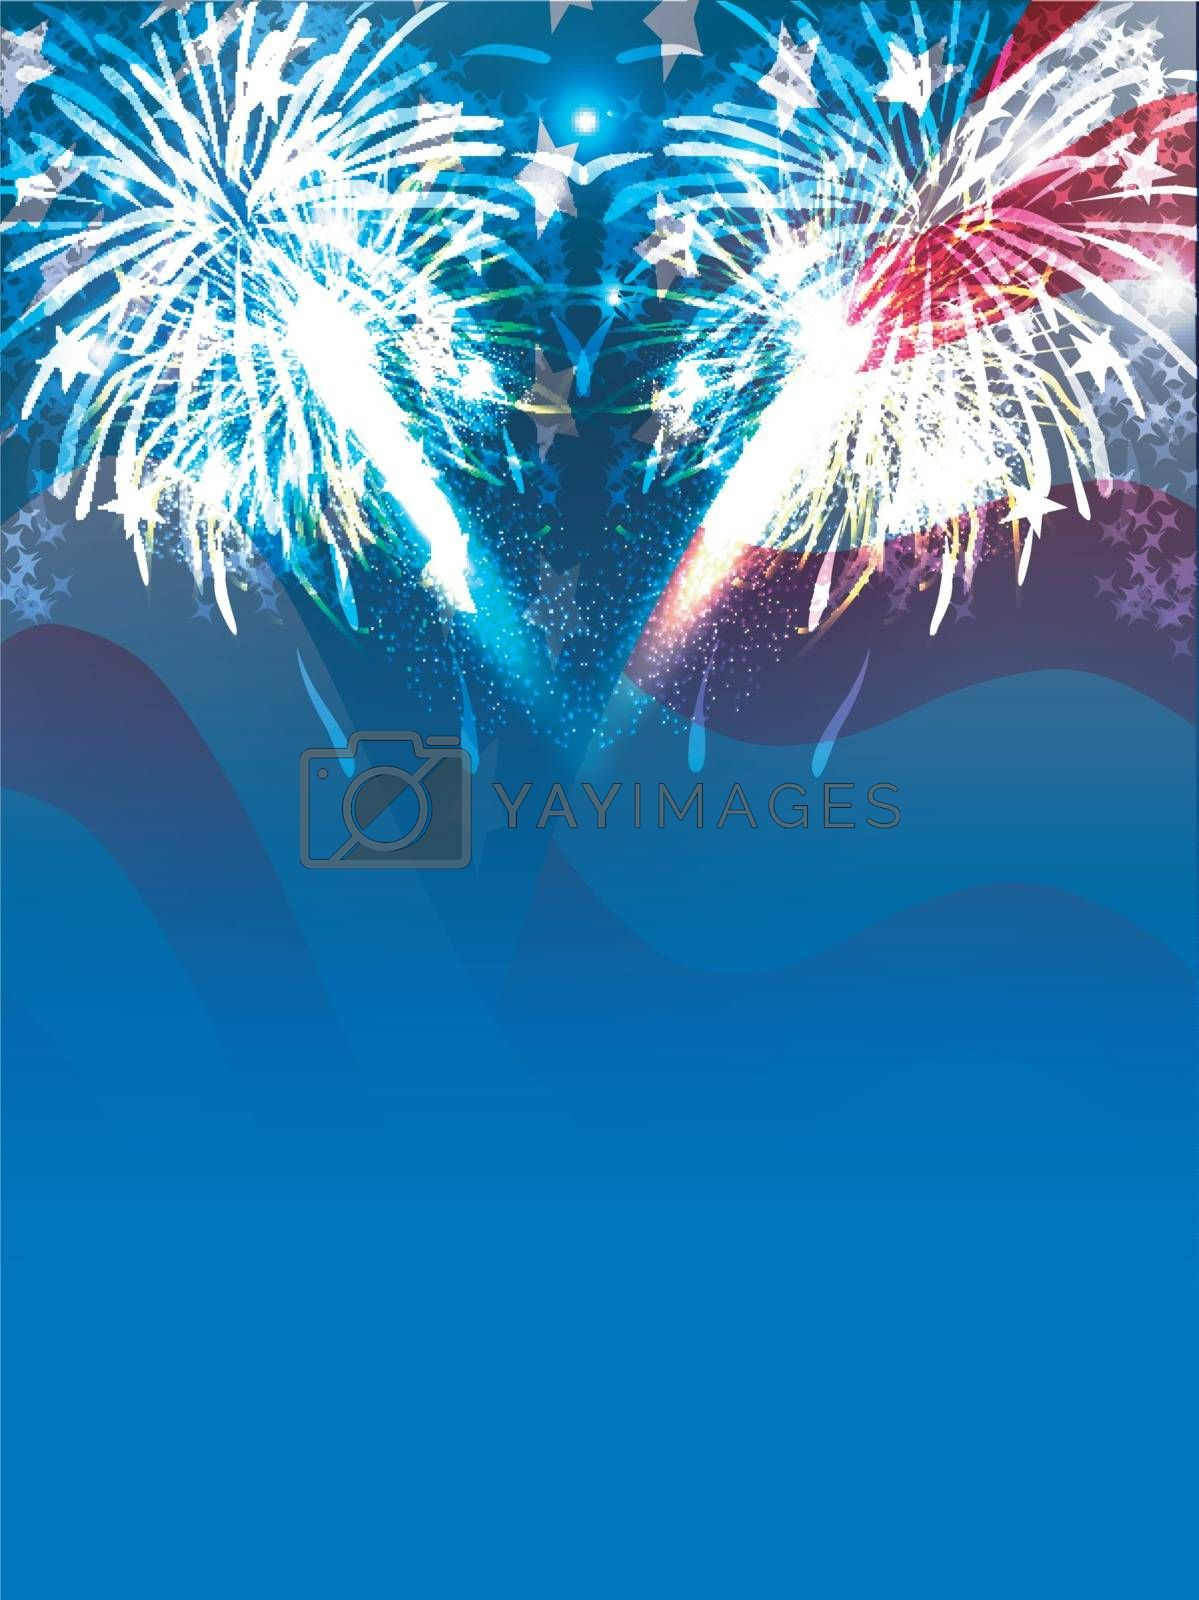 Sparkling firework explosion blue background for 4th of July celebration.